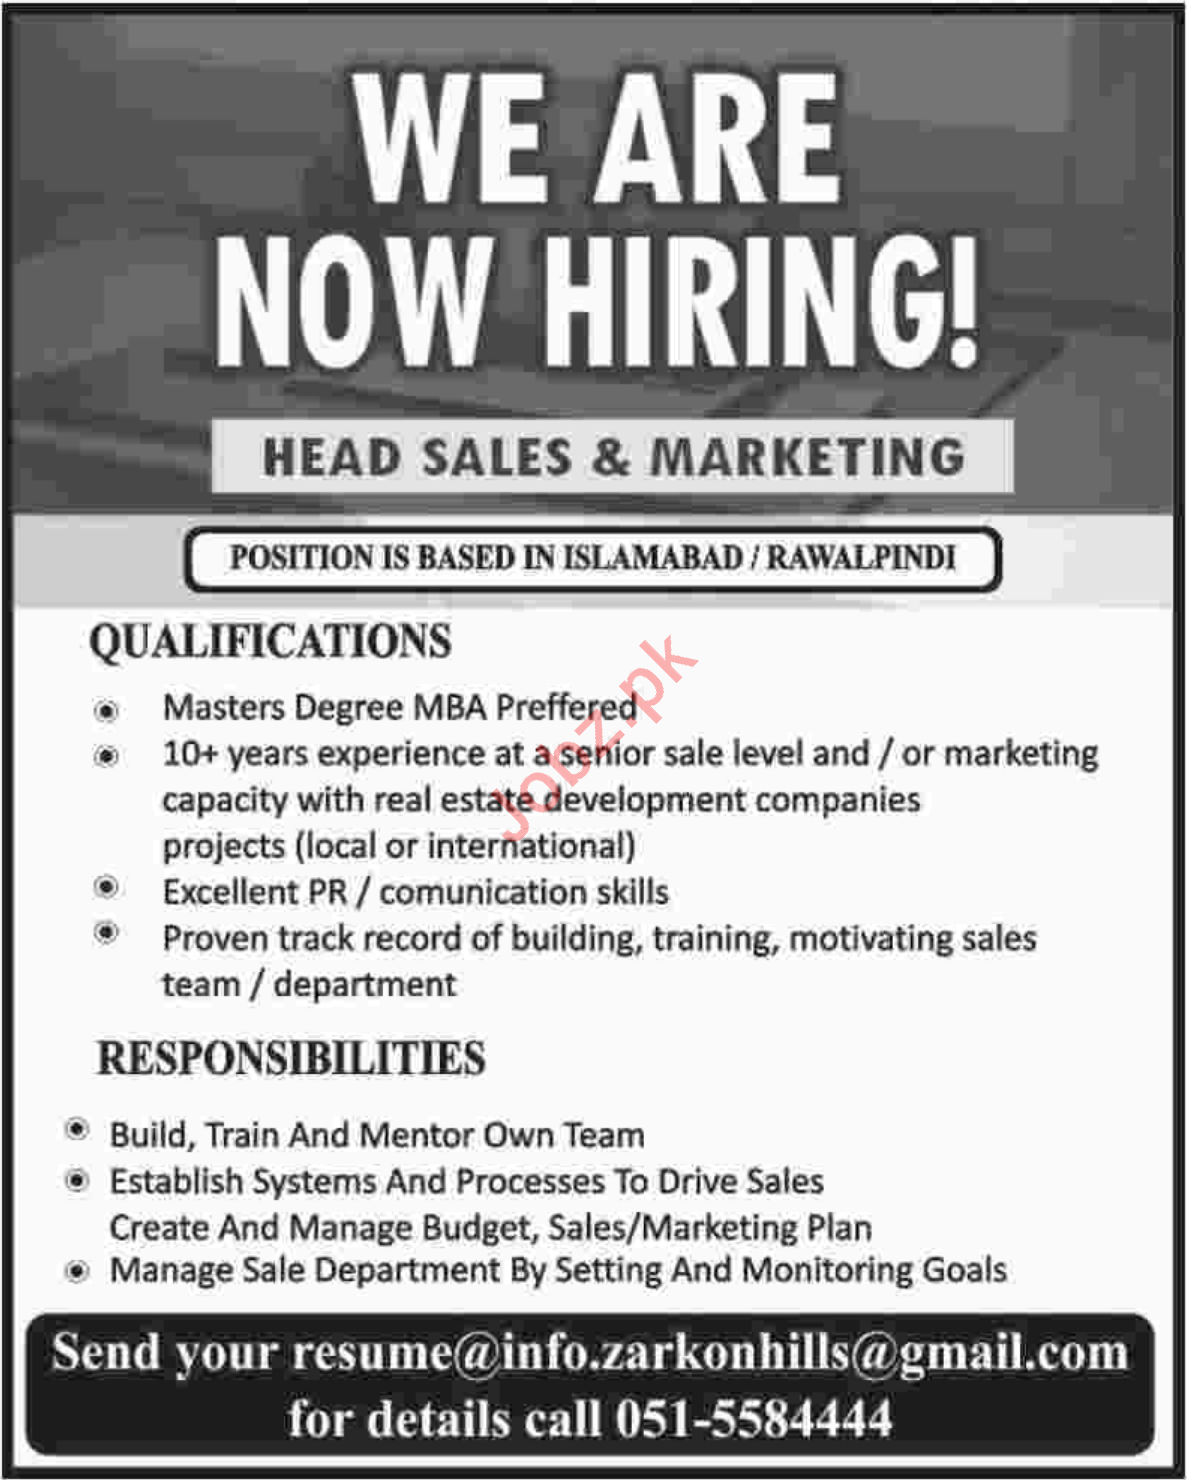 Head Sales & Marketing Jobs 2019